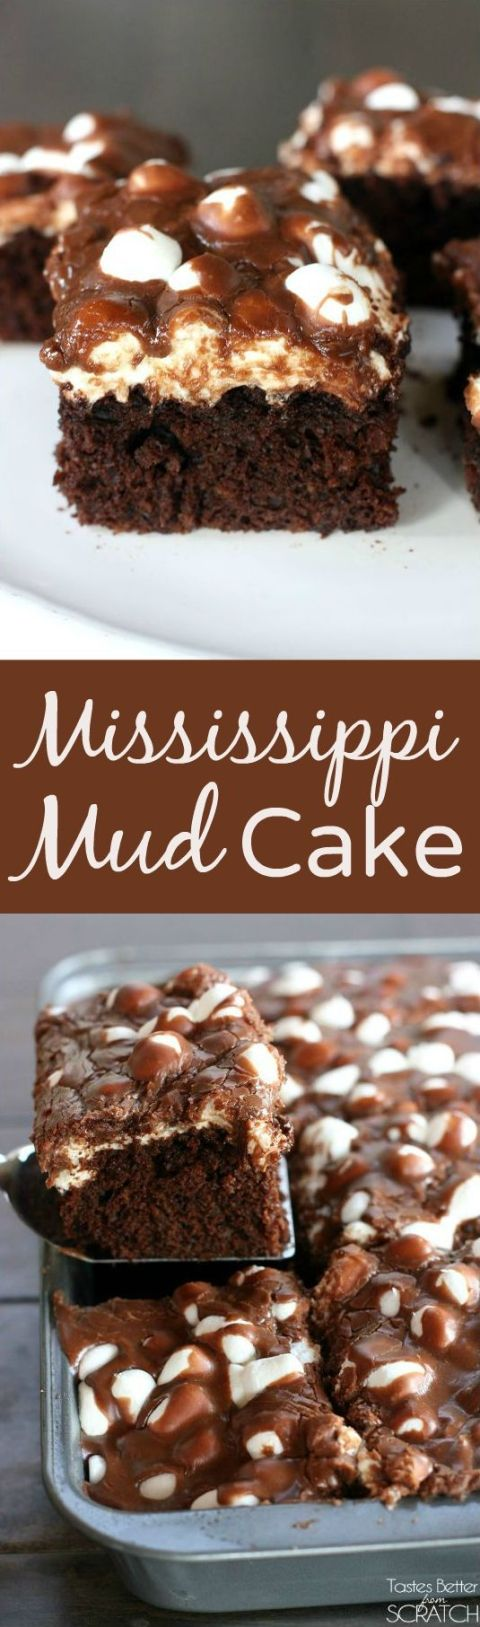 Chocolate cake with melted marshmallows and warm chocolate frosting make up this AMAZING Mississippi Mud Cake! Recipe from Tastes Better From Scratch